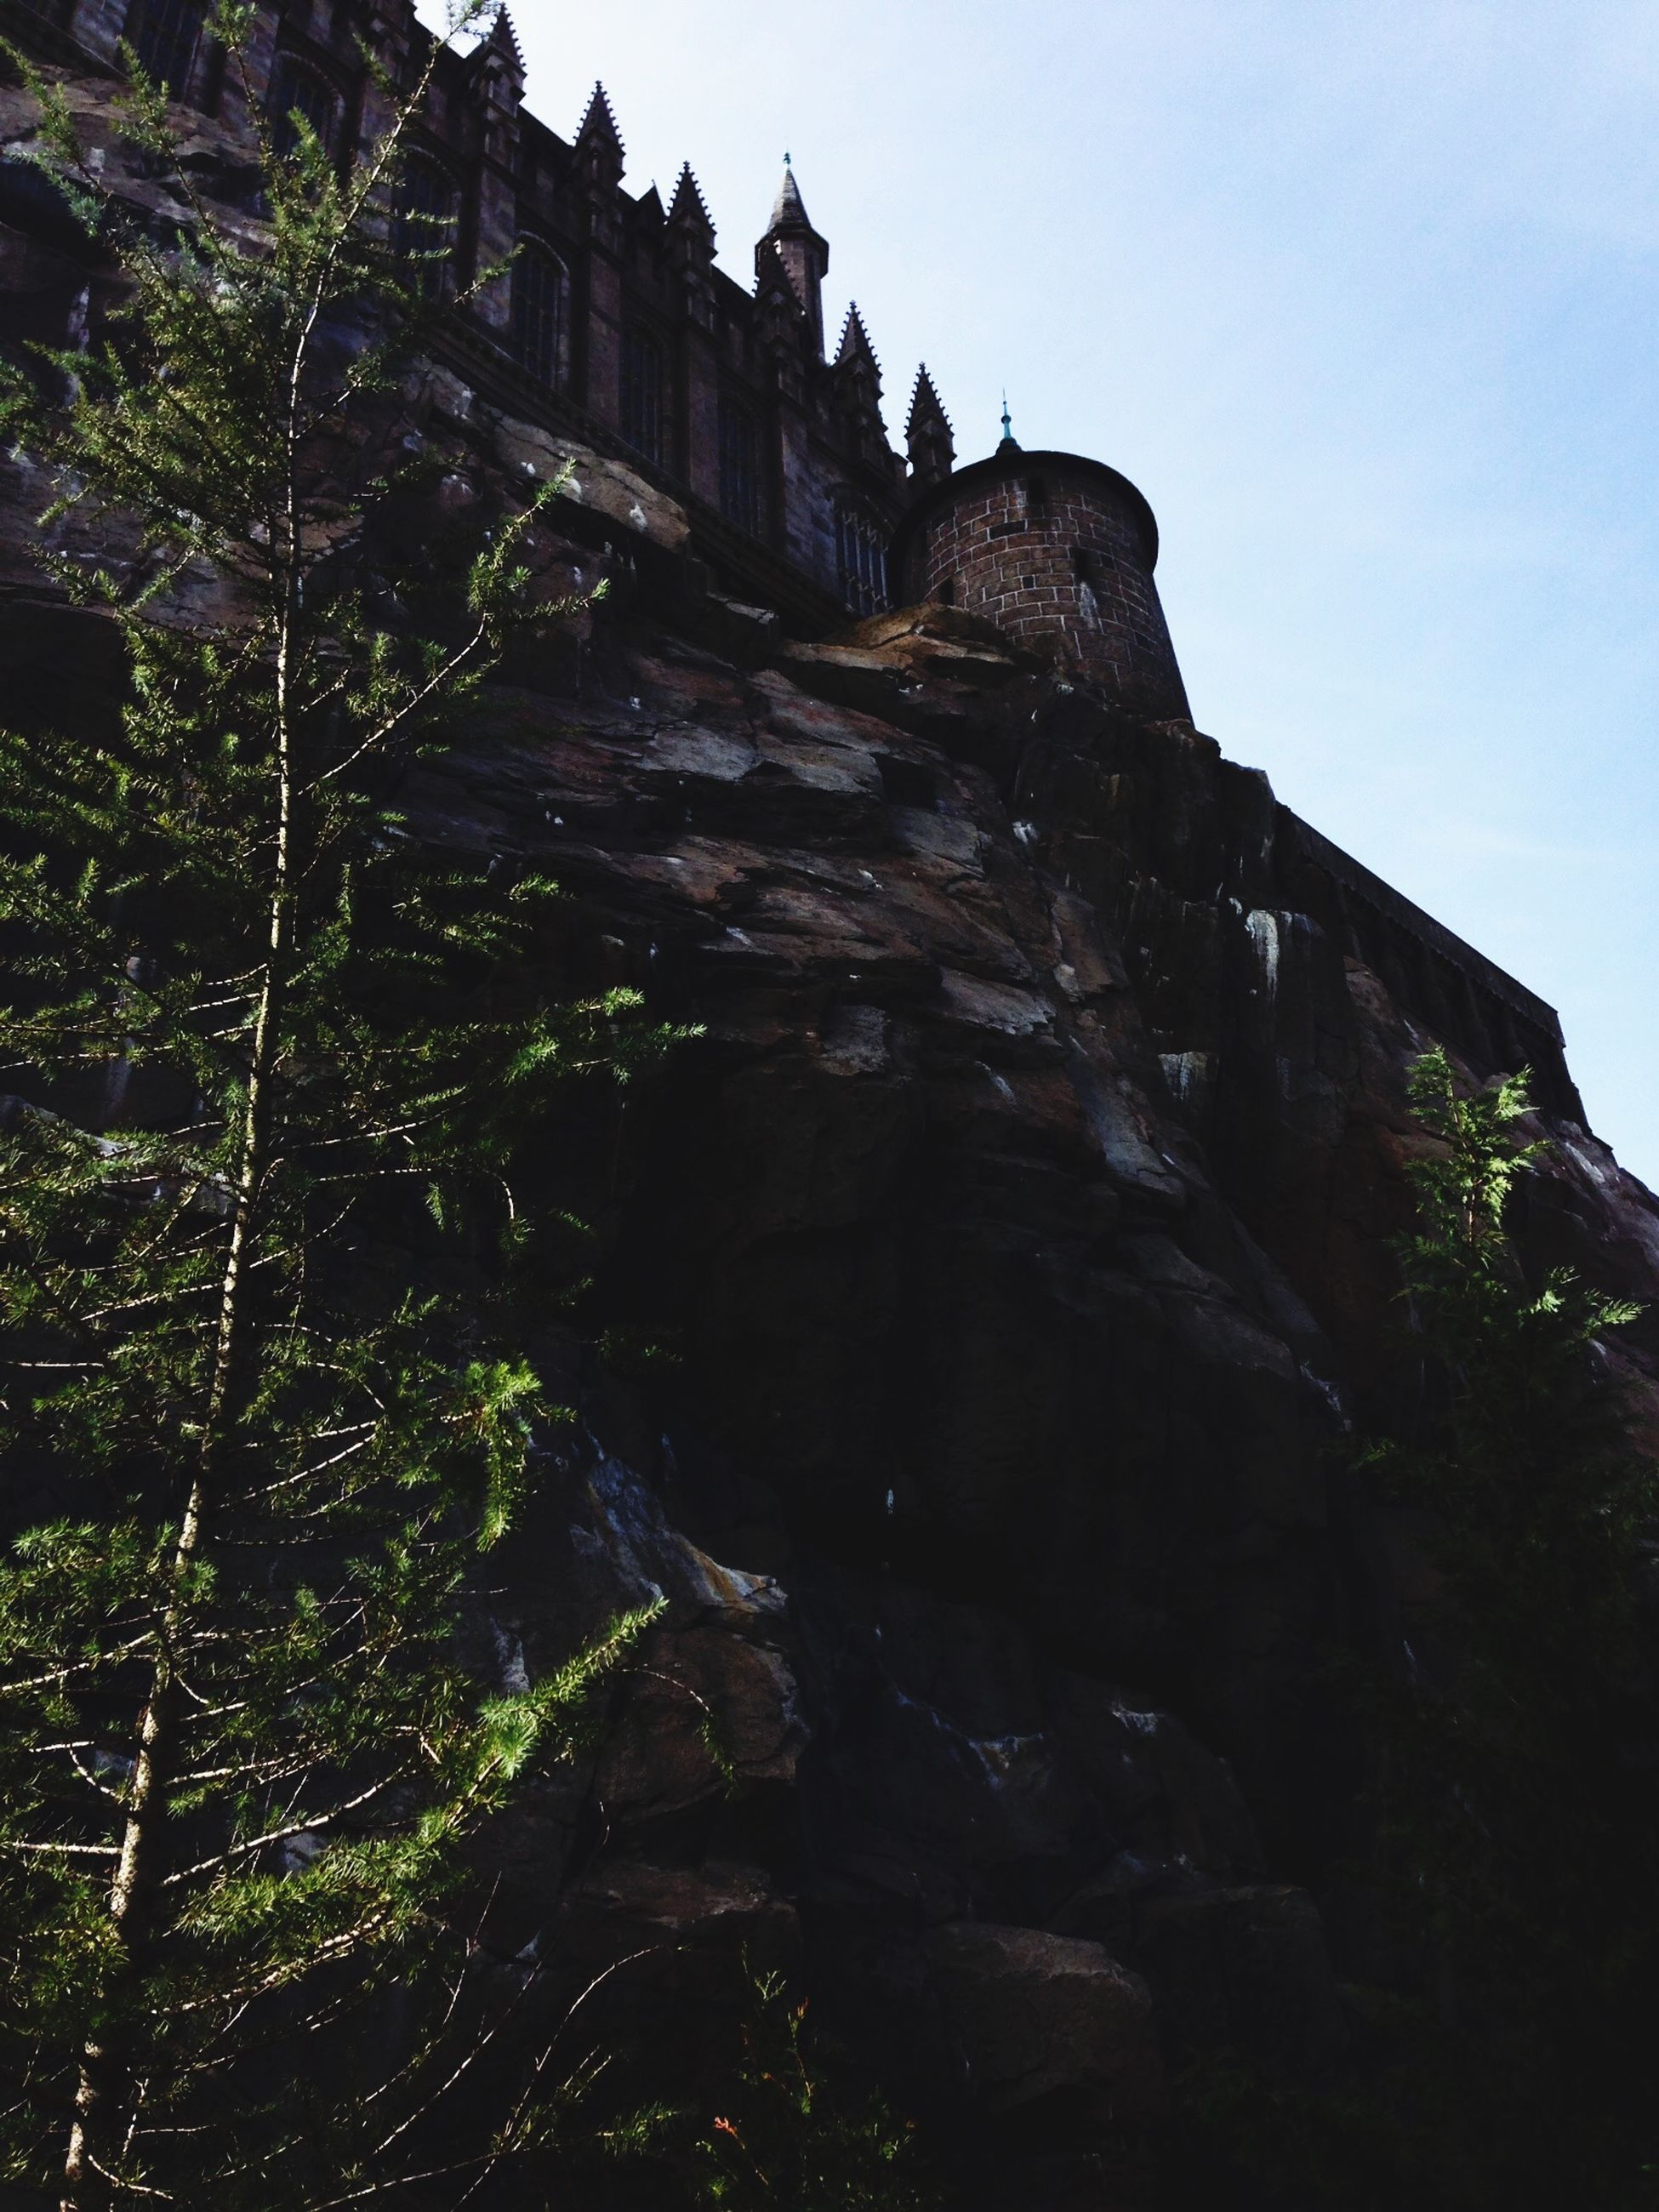 built structure, architecture, low angle view, building exterior, clear sky, sky, tree, rock - object, rock formation, plant, nature, day, outdoors, sunlight, cliff, steps, growth, tranquility, old ruin, no people